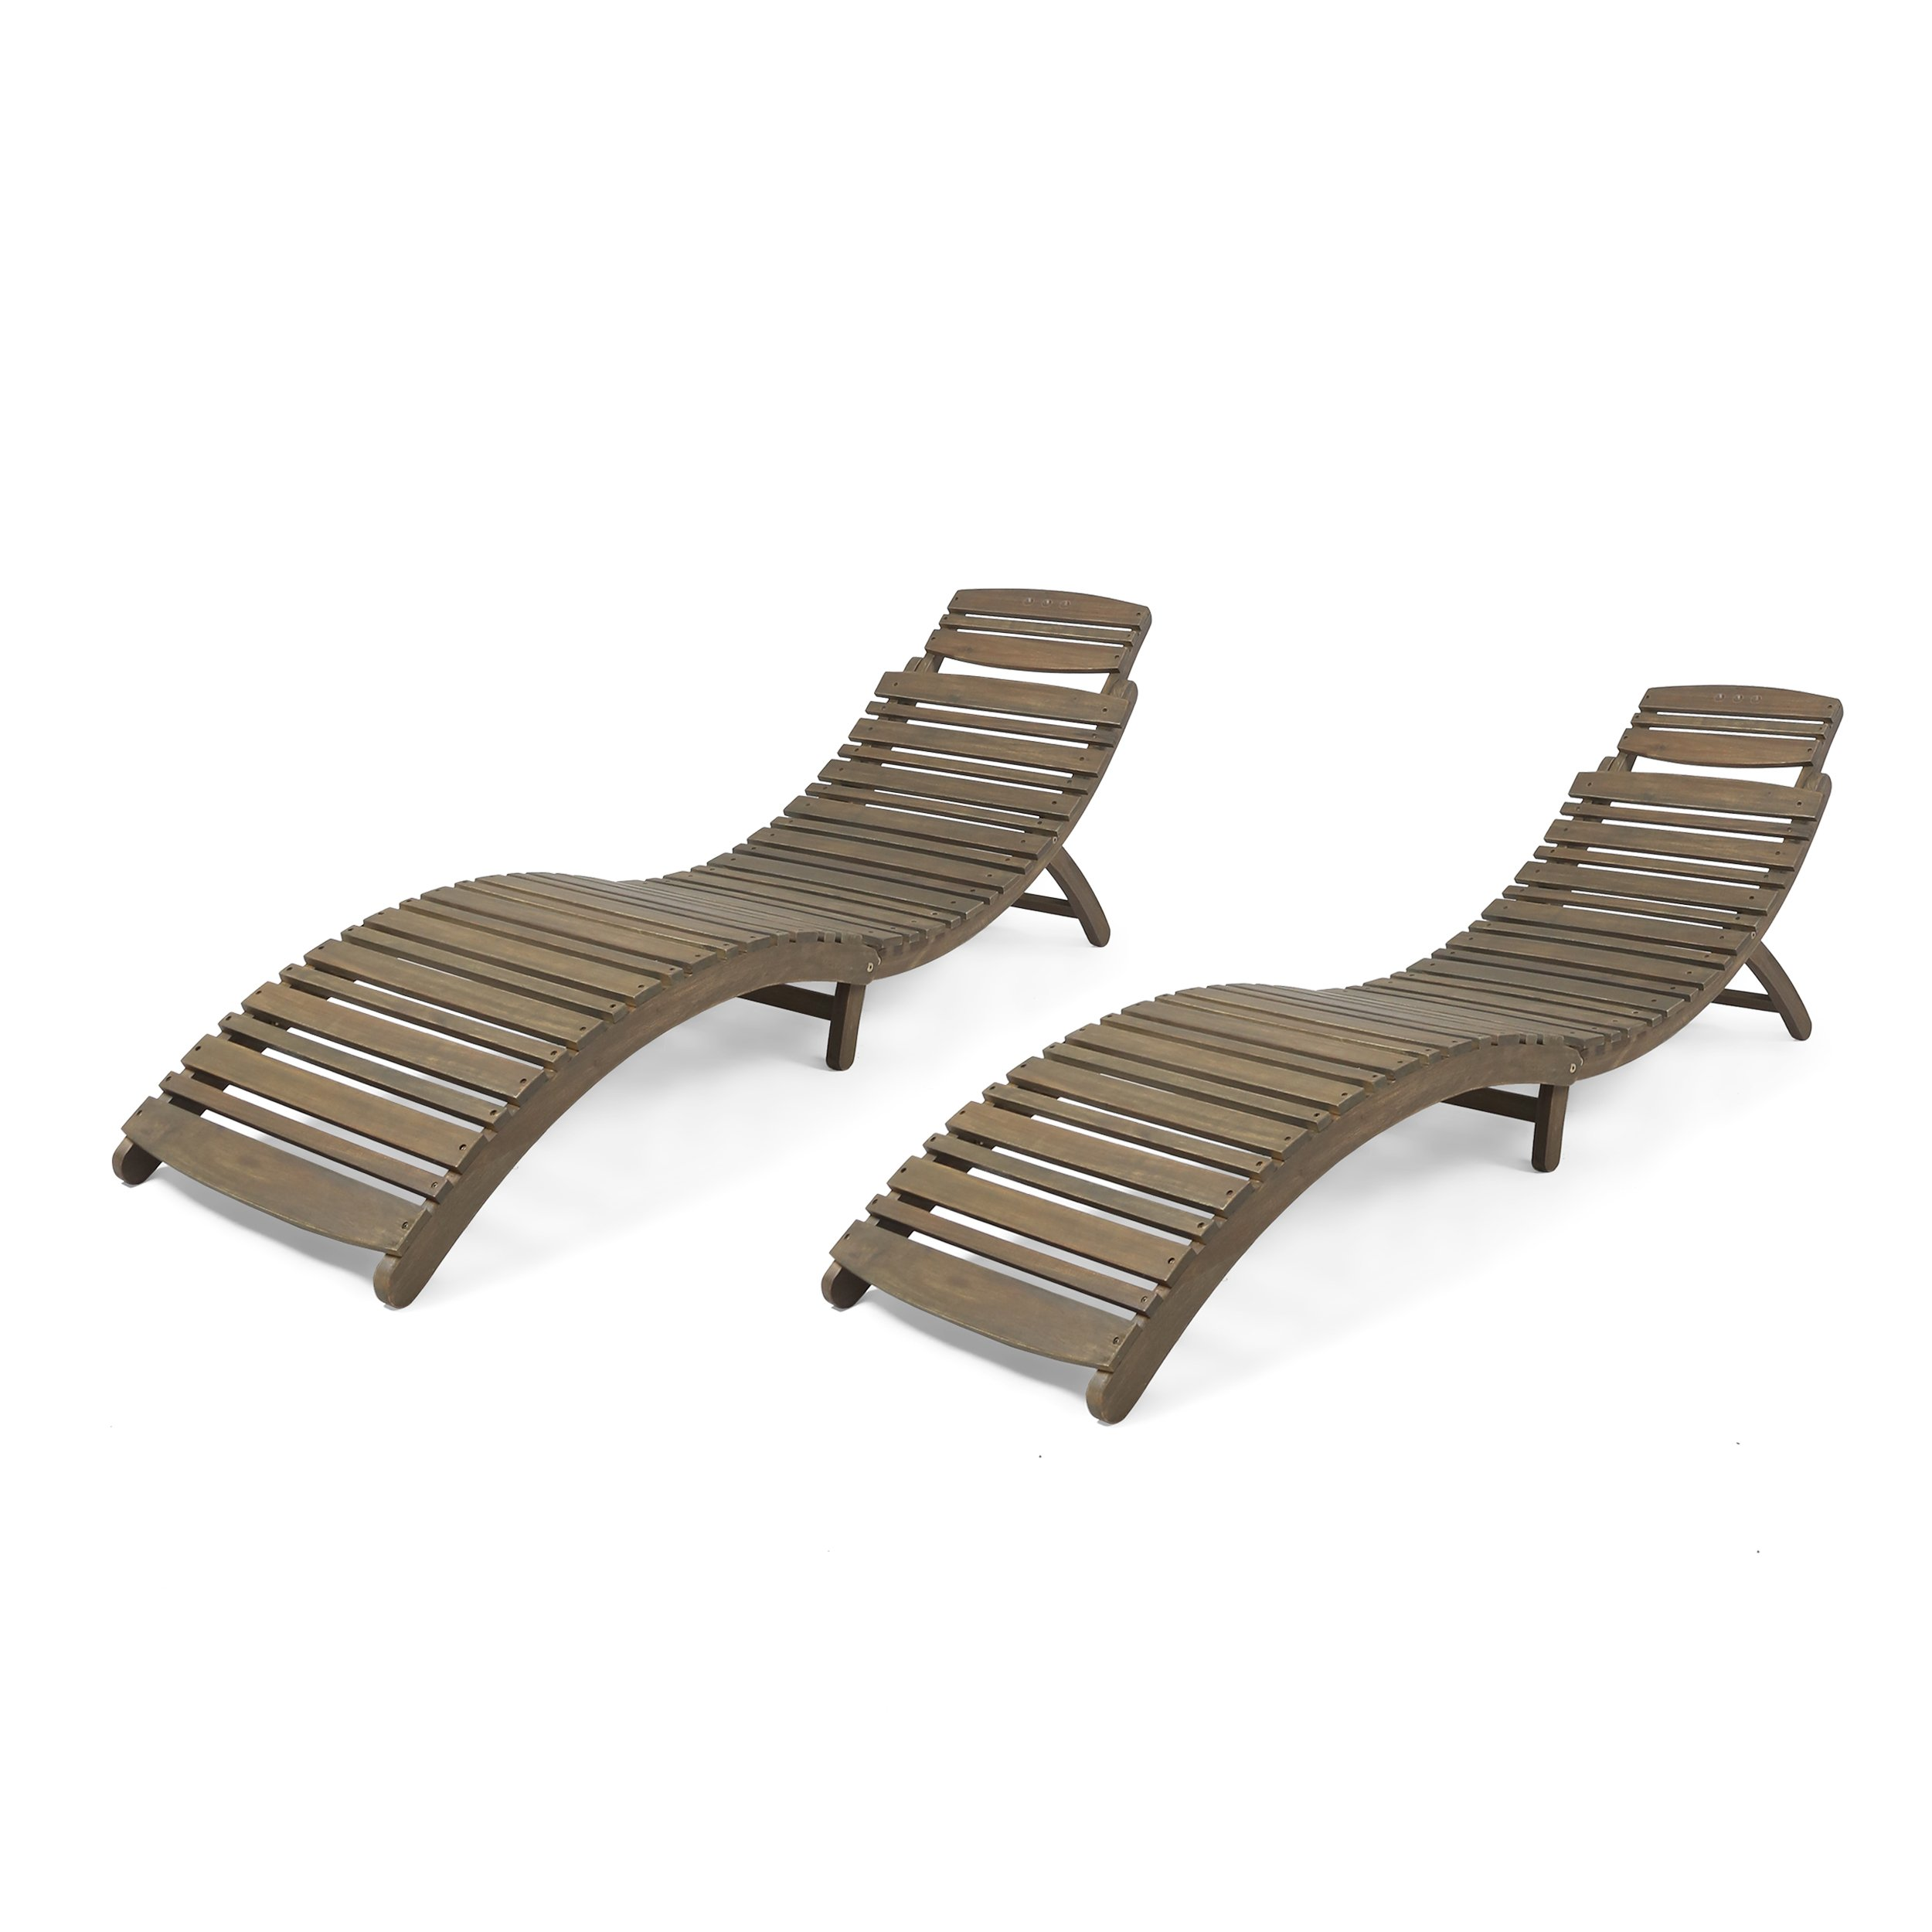 Great Deal Furniture 305101 Tycie Outdoor Acacia Wood Foldable Chaise Lounge (Set of 2), Gray, Finish